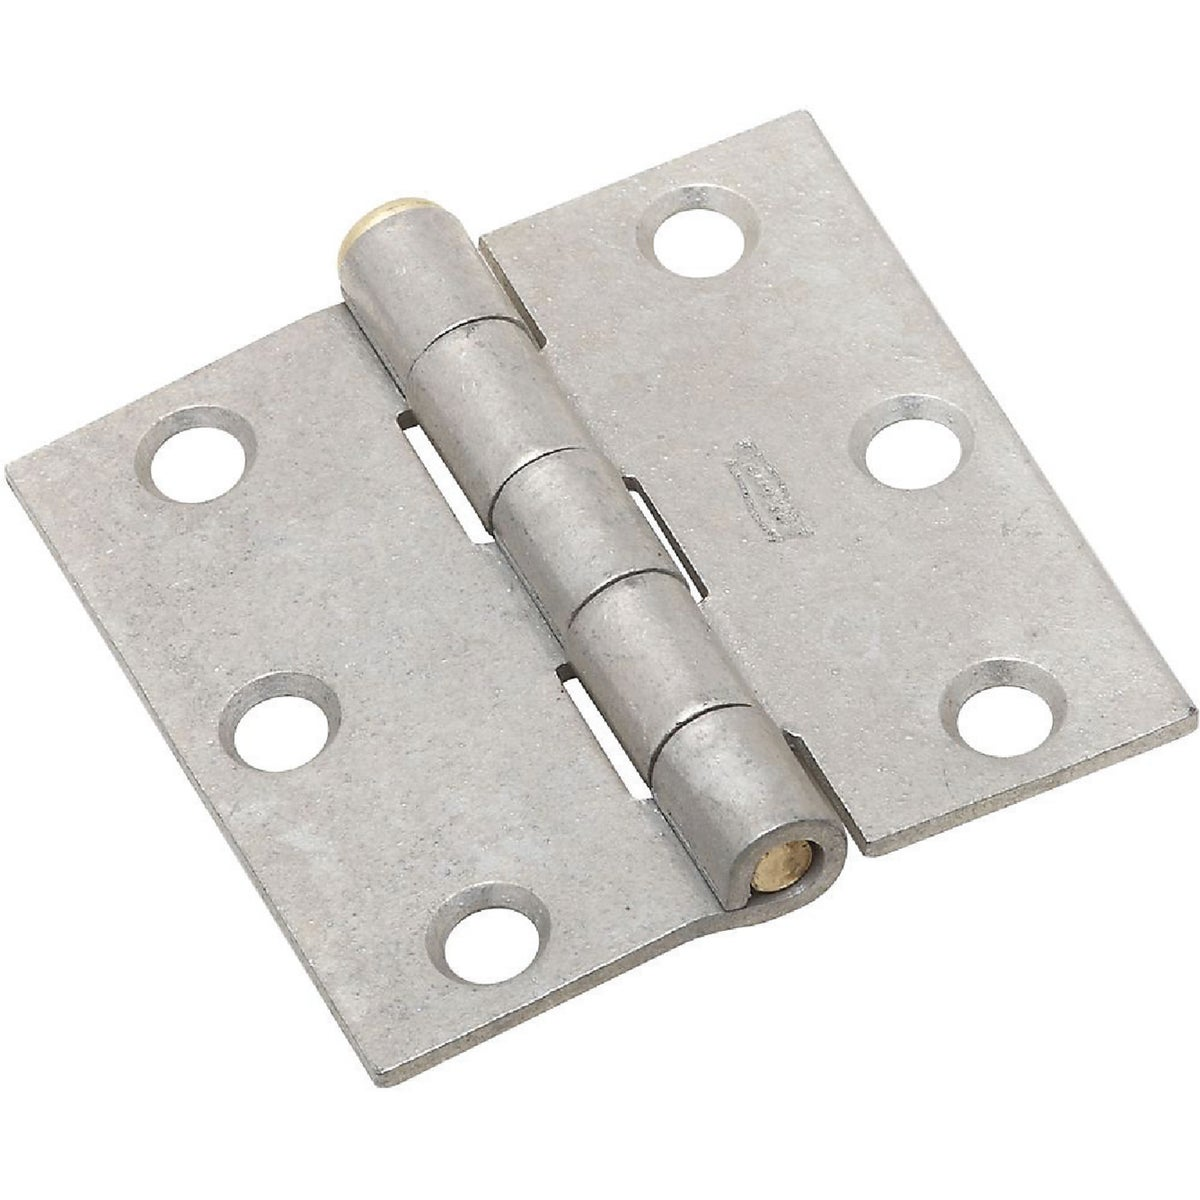 "2-1/2"" GALV LP HINGE - N208827 by National Mfg Co"